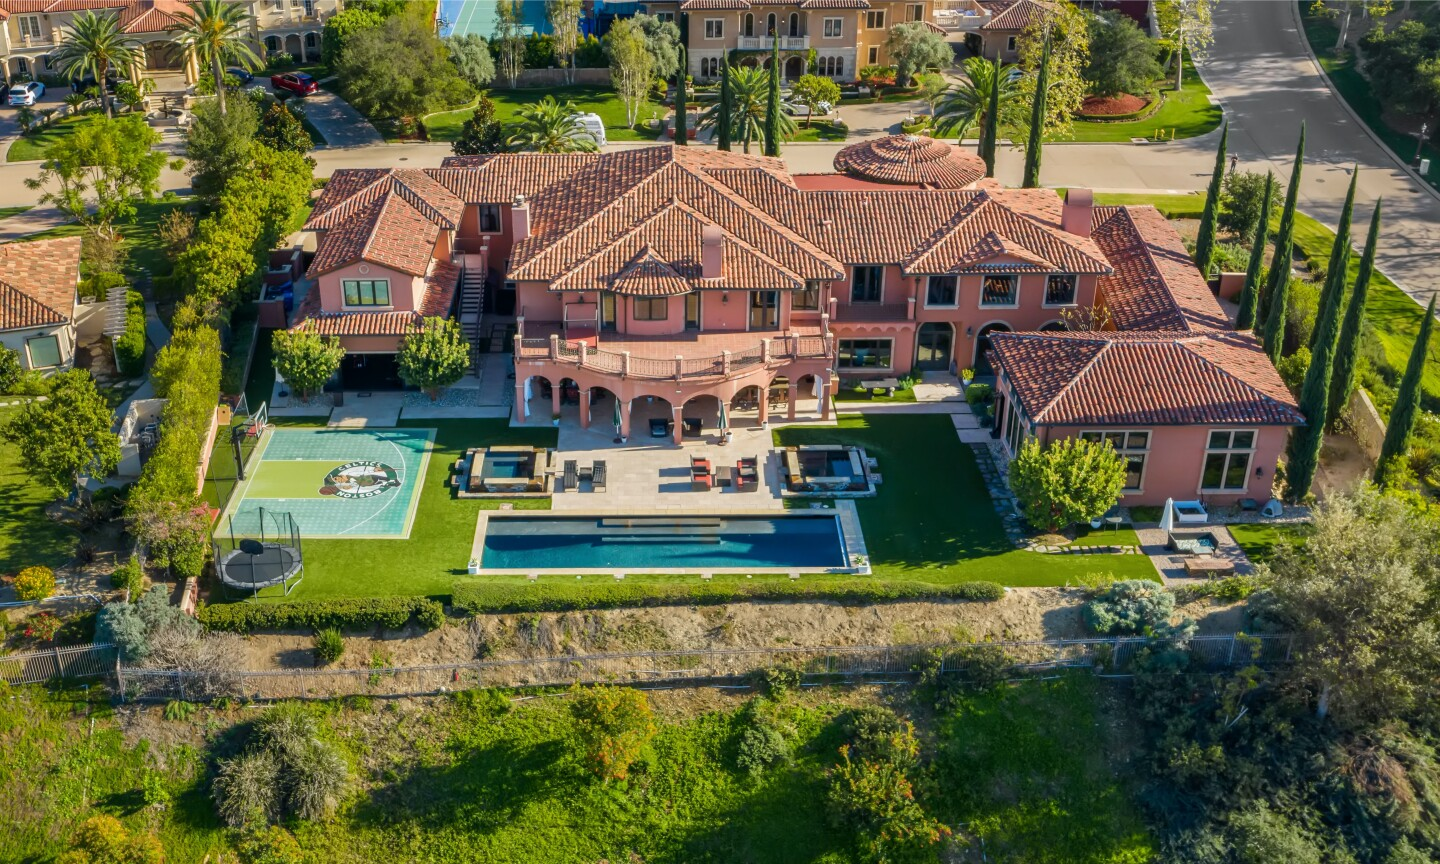 The estate centers on a 12,250-square-foot mansion with six bedrooms, nine bathrooms, a movie theater and bowling alley.